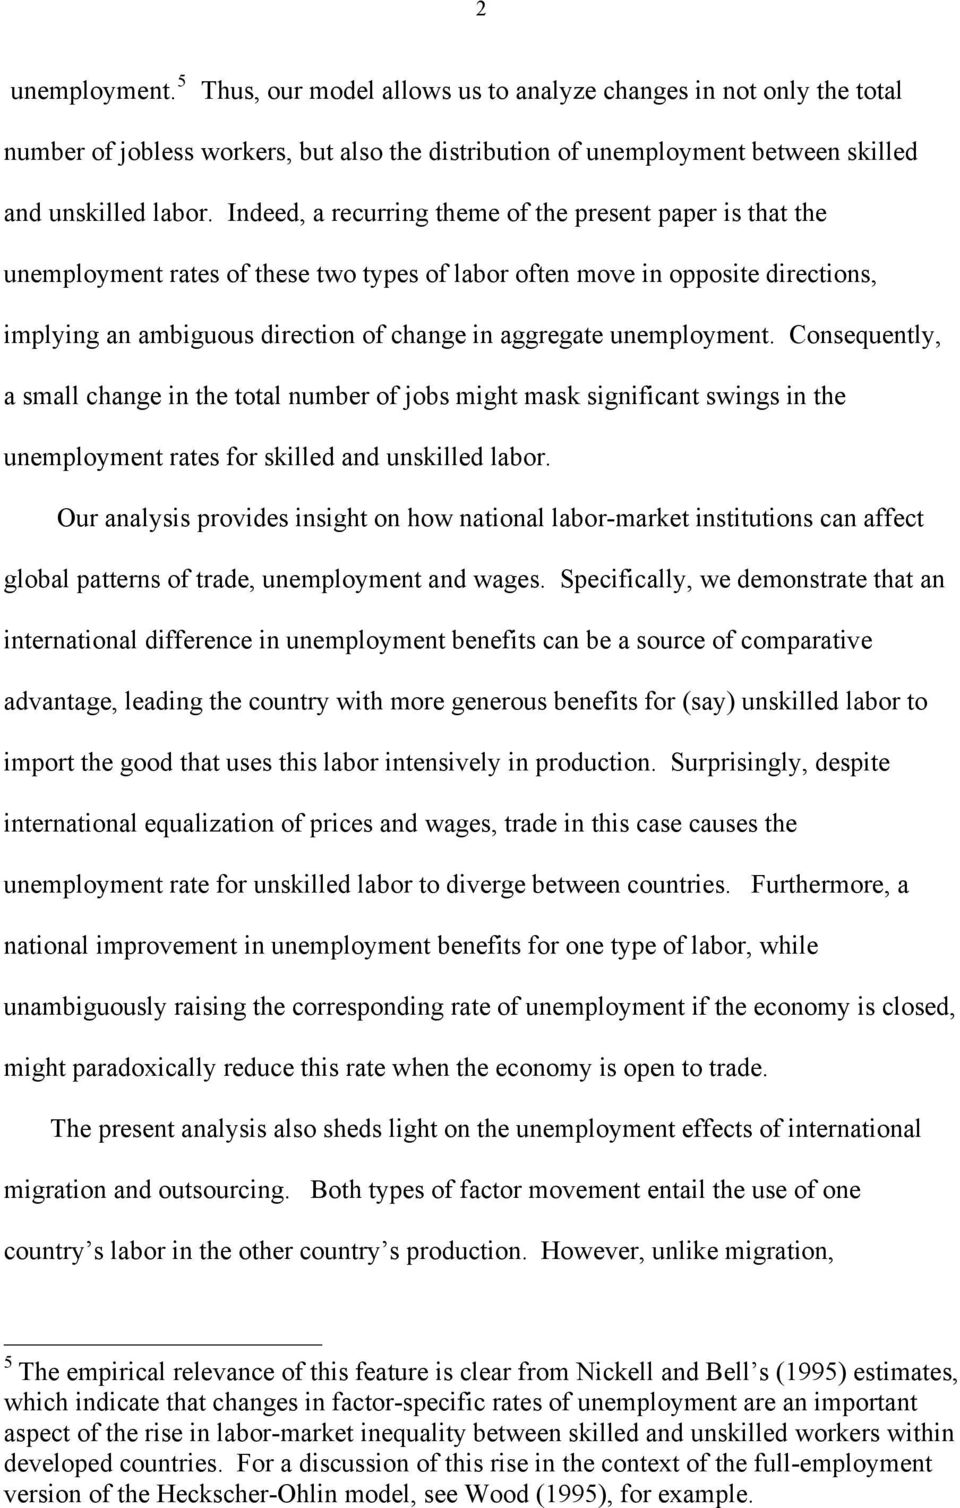 unemployment of skilled and unskilled labor in an open economy consequently a small change n the total number of jobs mght mask sgnfcant swngs n